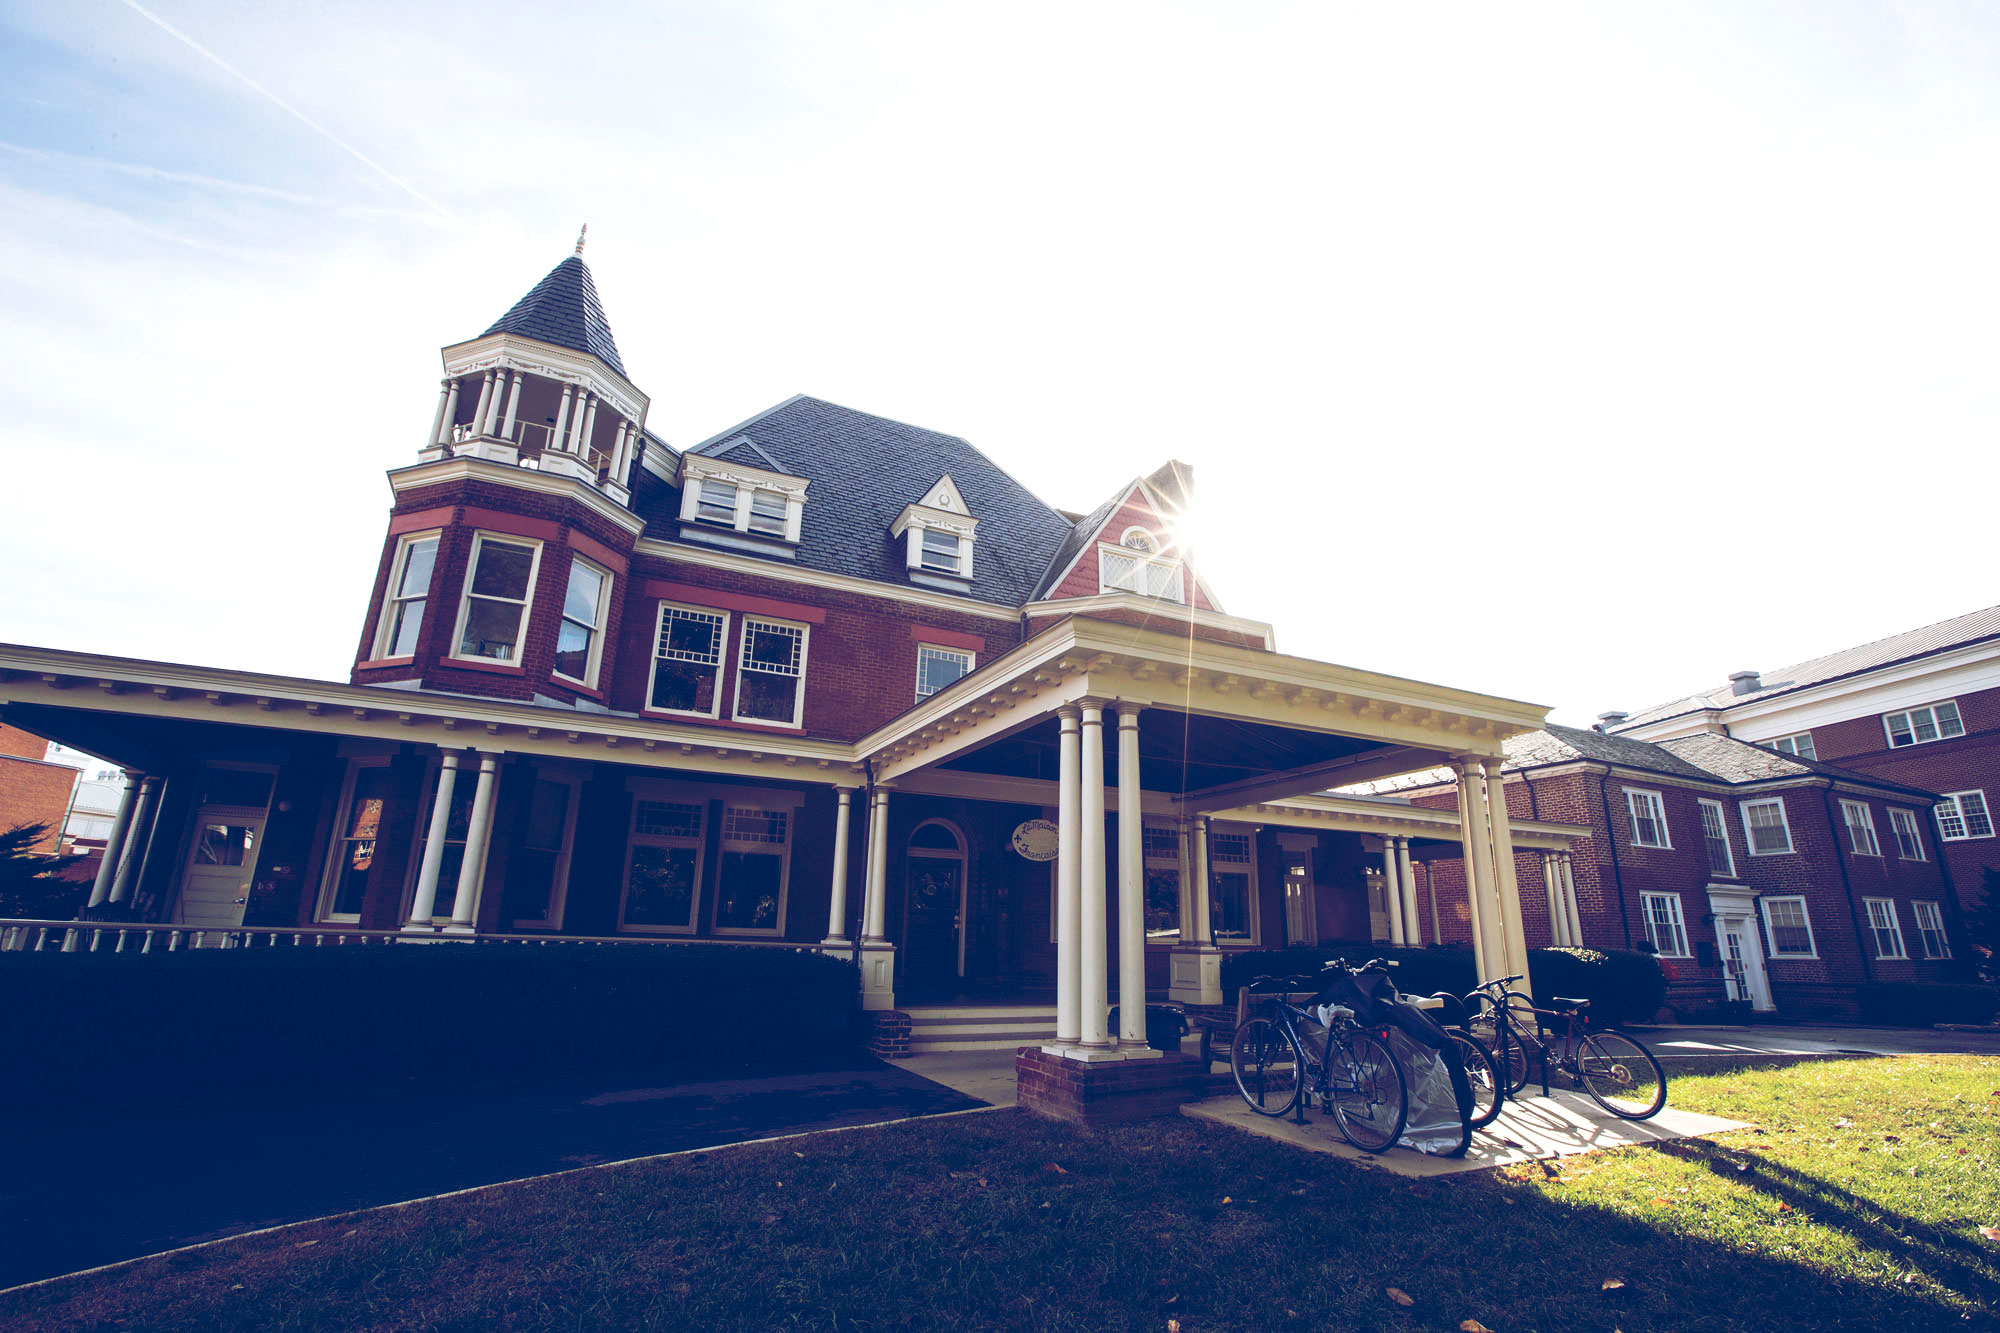 Residents of UVA's language houses have the opportunity to experience cultural immersion while enjoying a nontraditional living arrangement on Grounds.